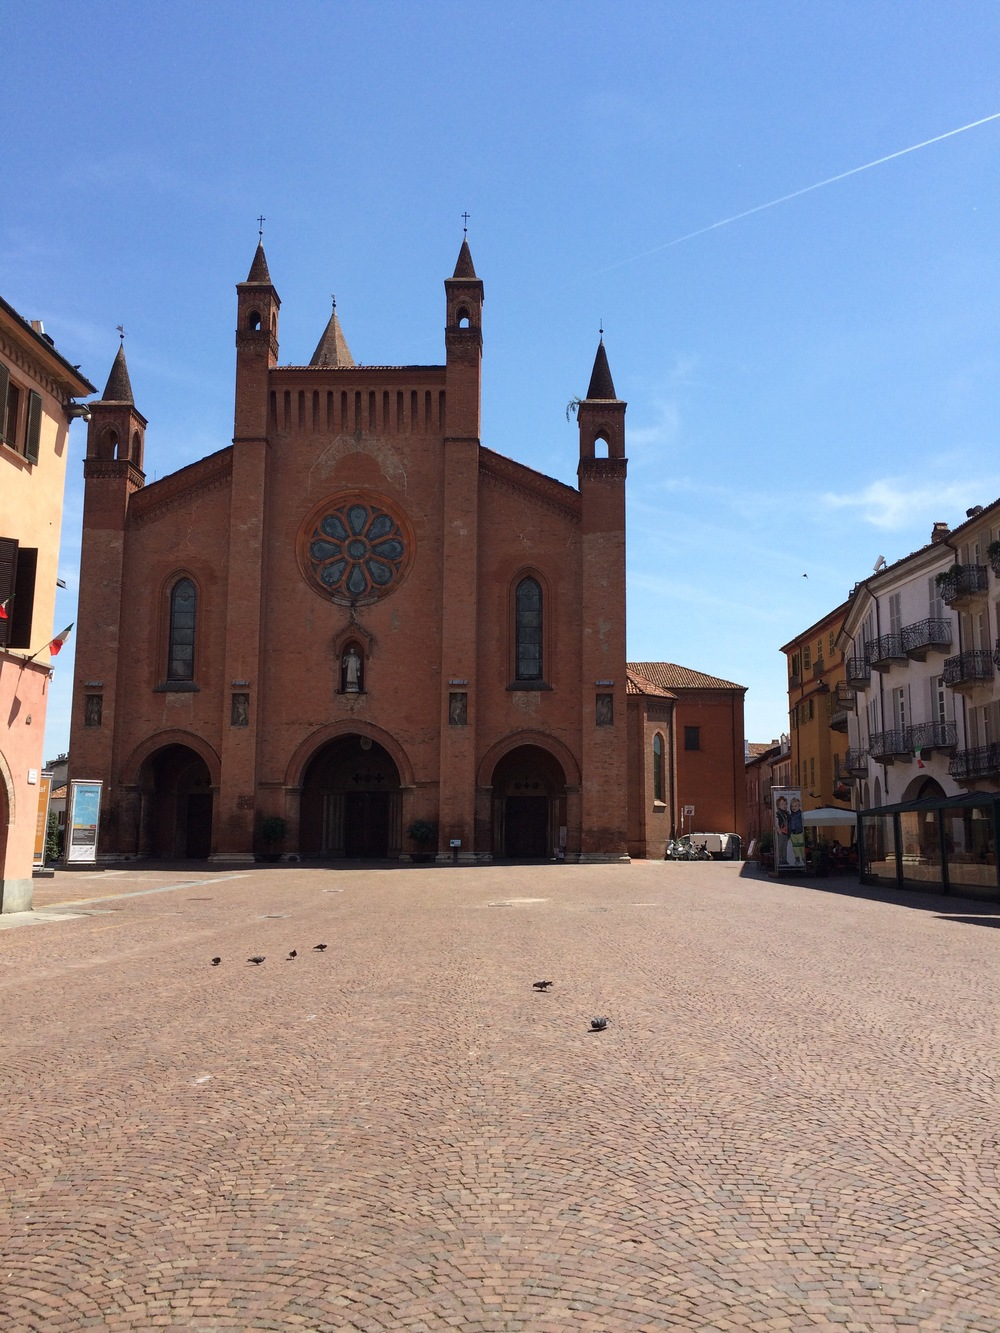 the Piazza Doumo in Alba